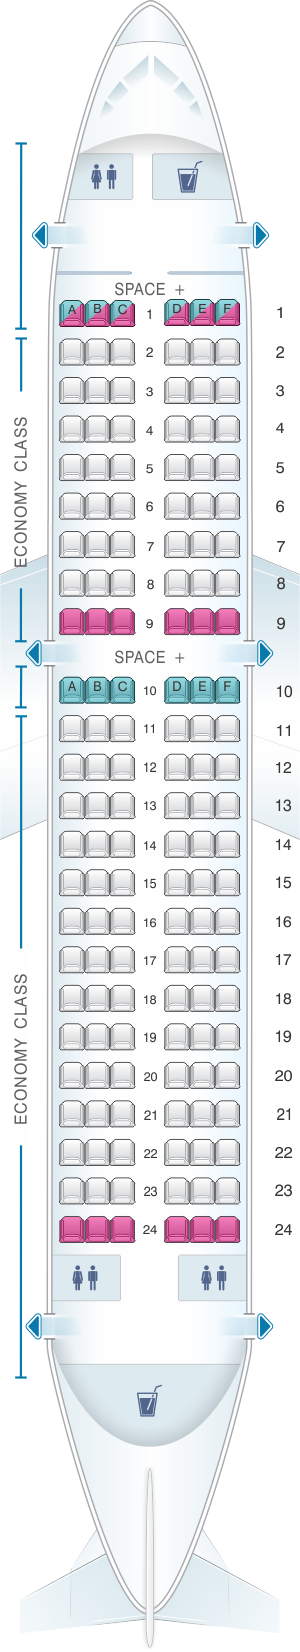 Seat map for LATAM Airlines Brasil Airbus A319